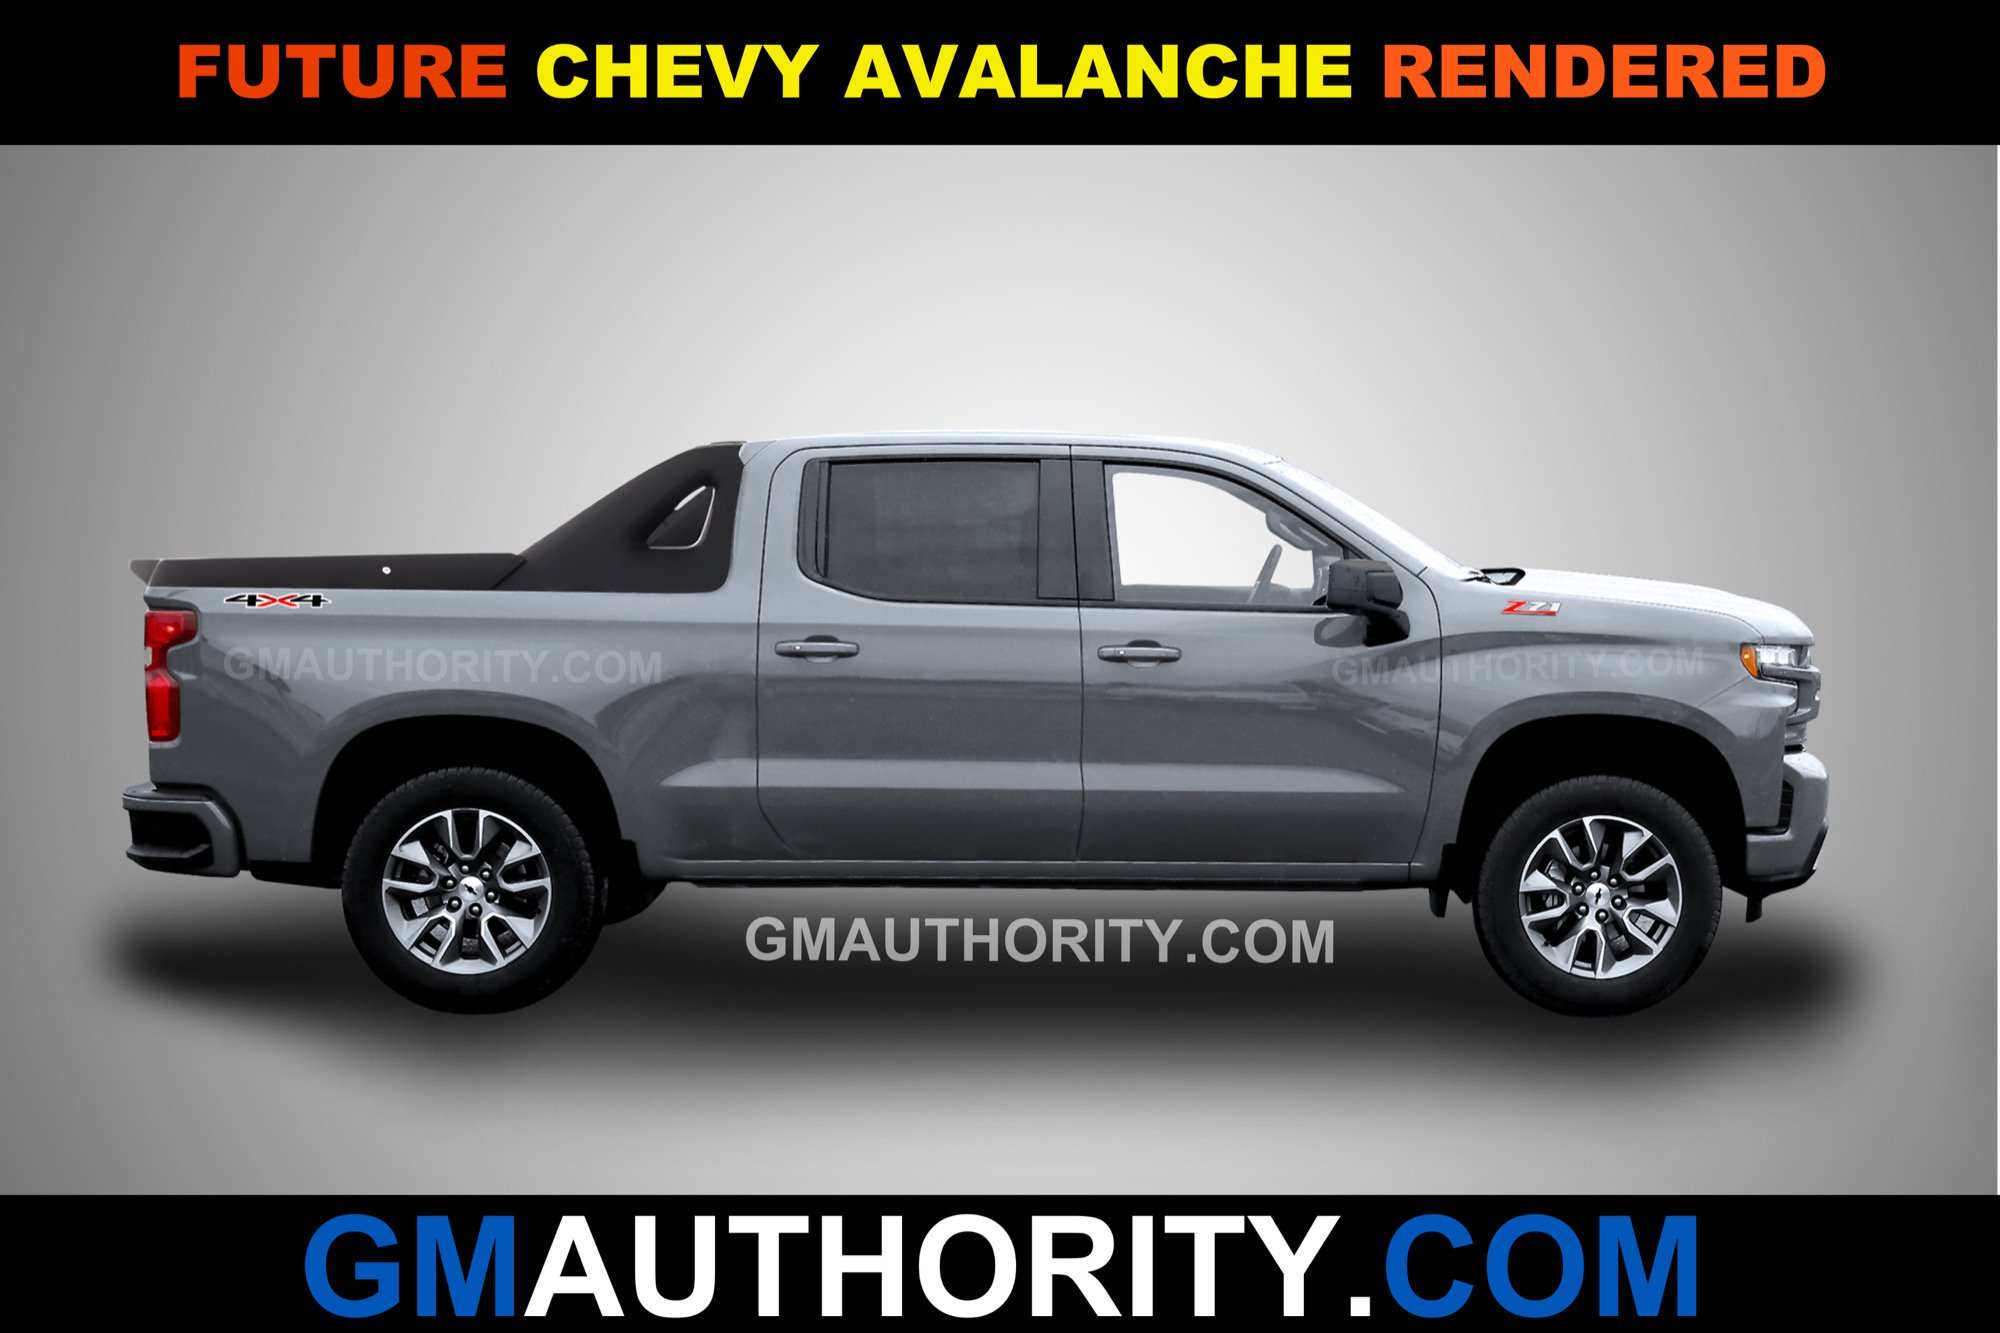 15 Concept of Chevrolet Avalanche 2020 Release Date with Chevrolet Avalanche 2020